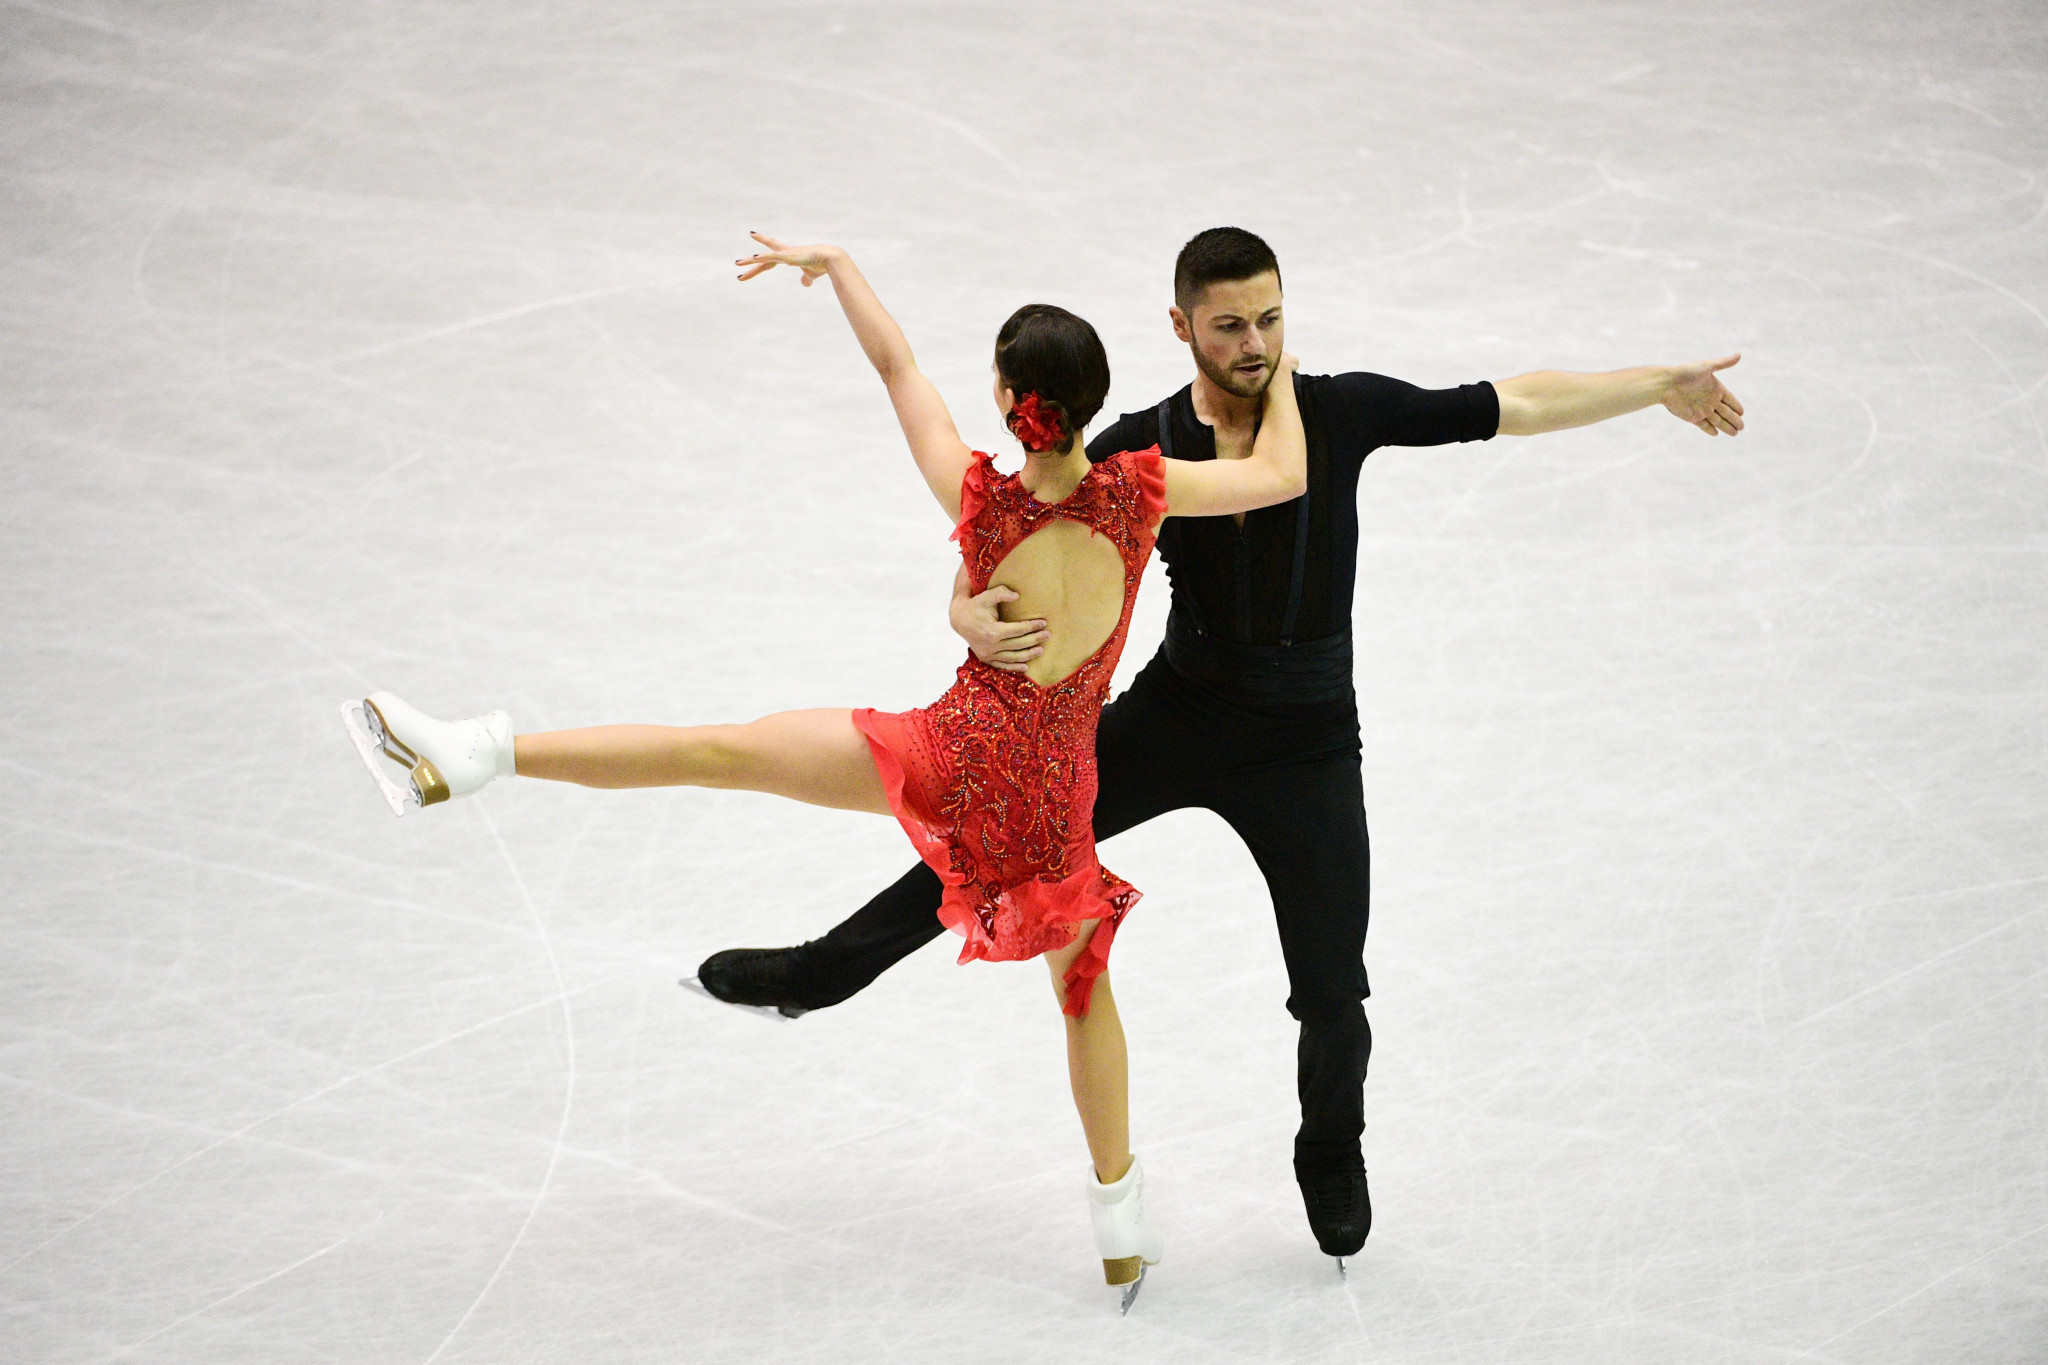 Olympic gold medallists Torvill and Dean launch British Ice Skating Academy of Dance in Sheffield